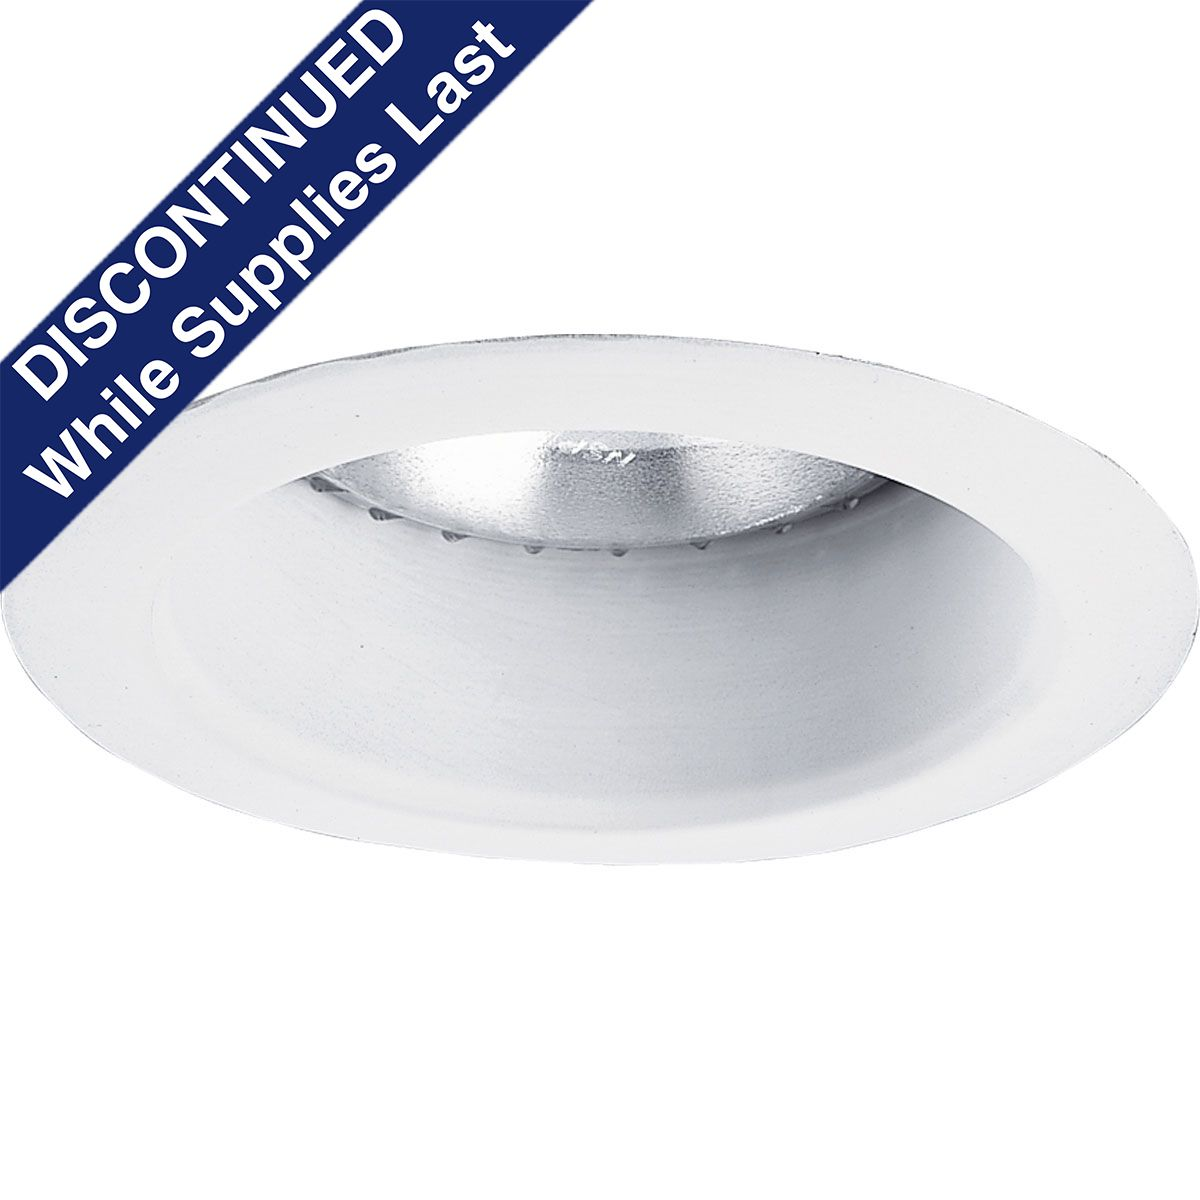 PROP8168-28 OPEN REFLECTOR; ALUMINUM; BRIGHT WHITE; 5 INCH NOMINAL APERTURE SIZE; ROUND APERTURE SHAPE; (1) PAR30/R30 75 W INCANDESCENT LAMP; INSULATED/NON INSULATED CEILING; SIZE 6 1/8 INCH W; APPLICATION DAMP LOCATION; APPROVAL UL, CUL; PROGRESS LIGHTING[R] BRAND, PROGRESS